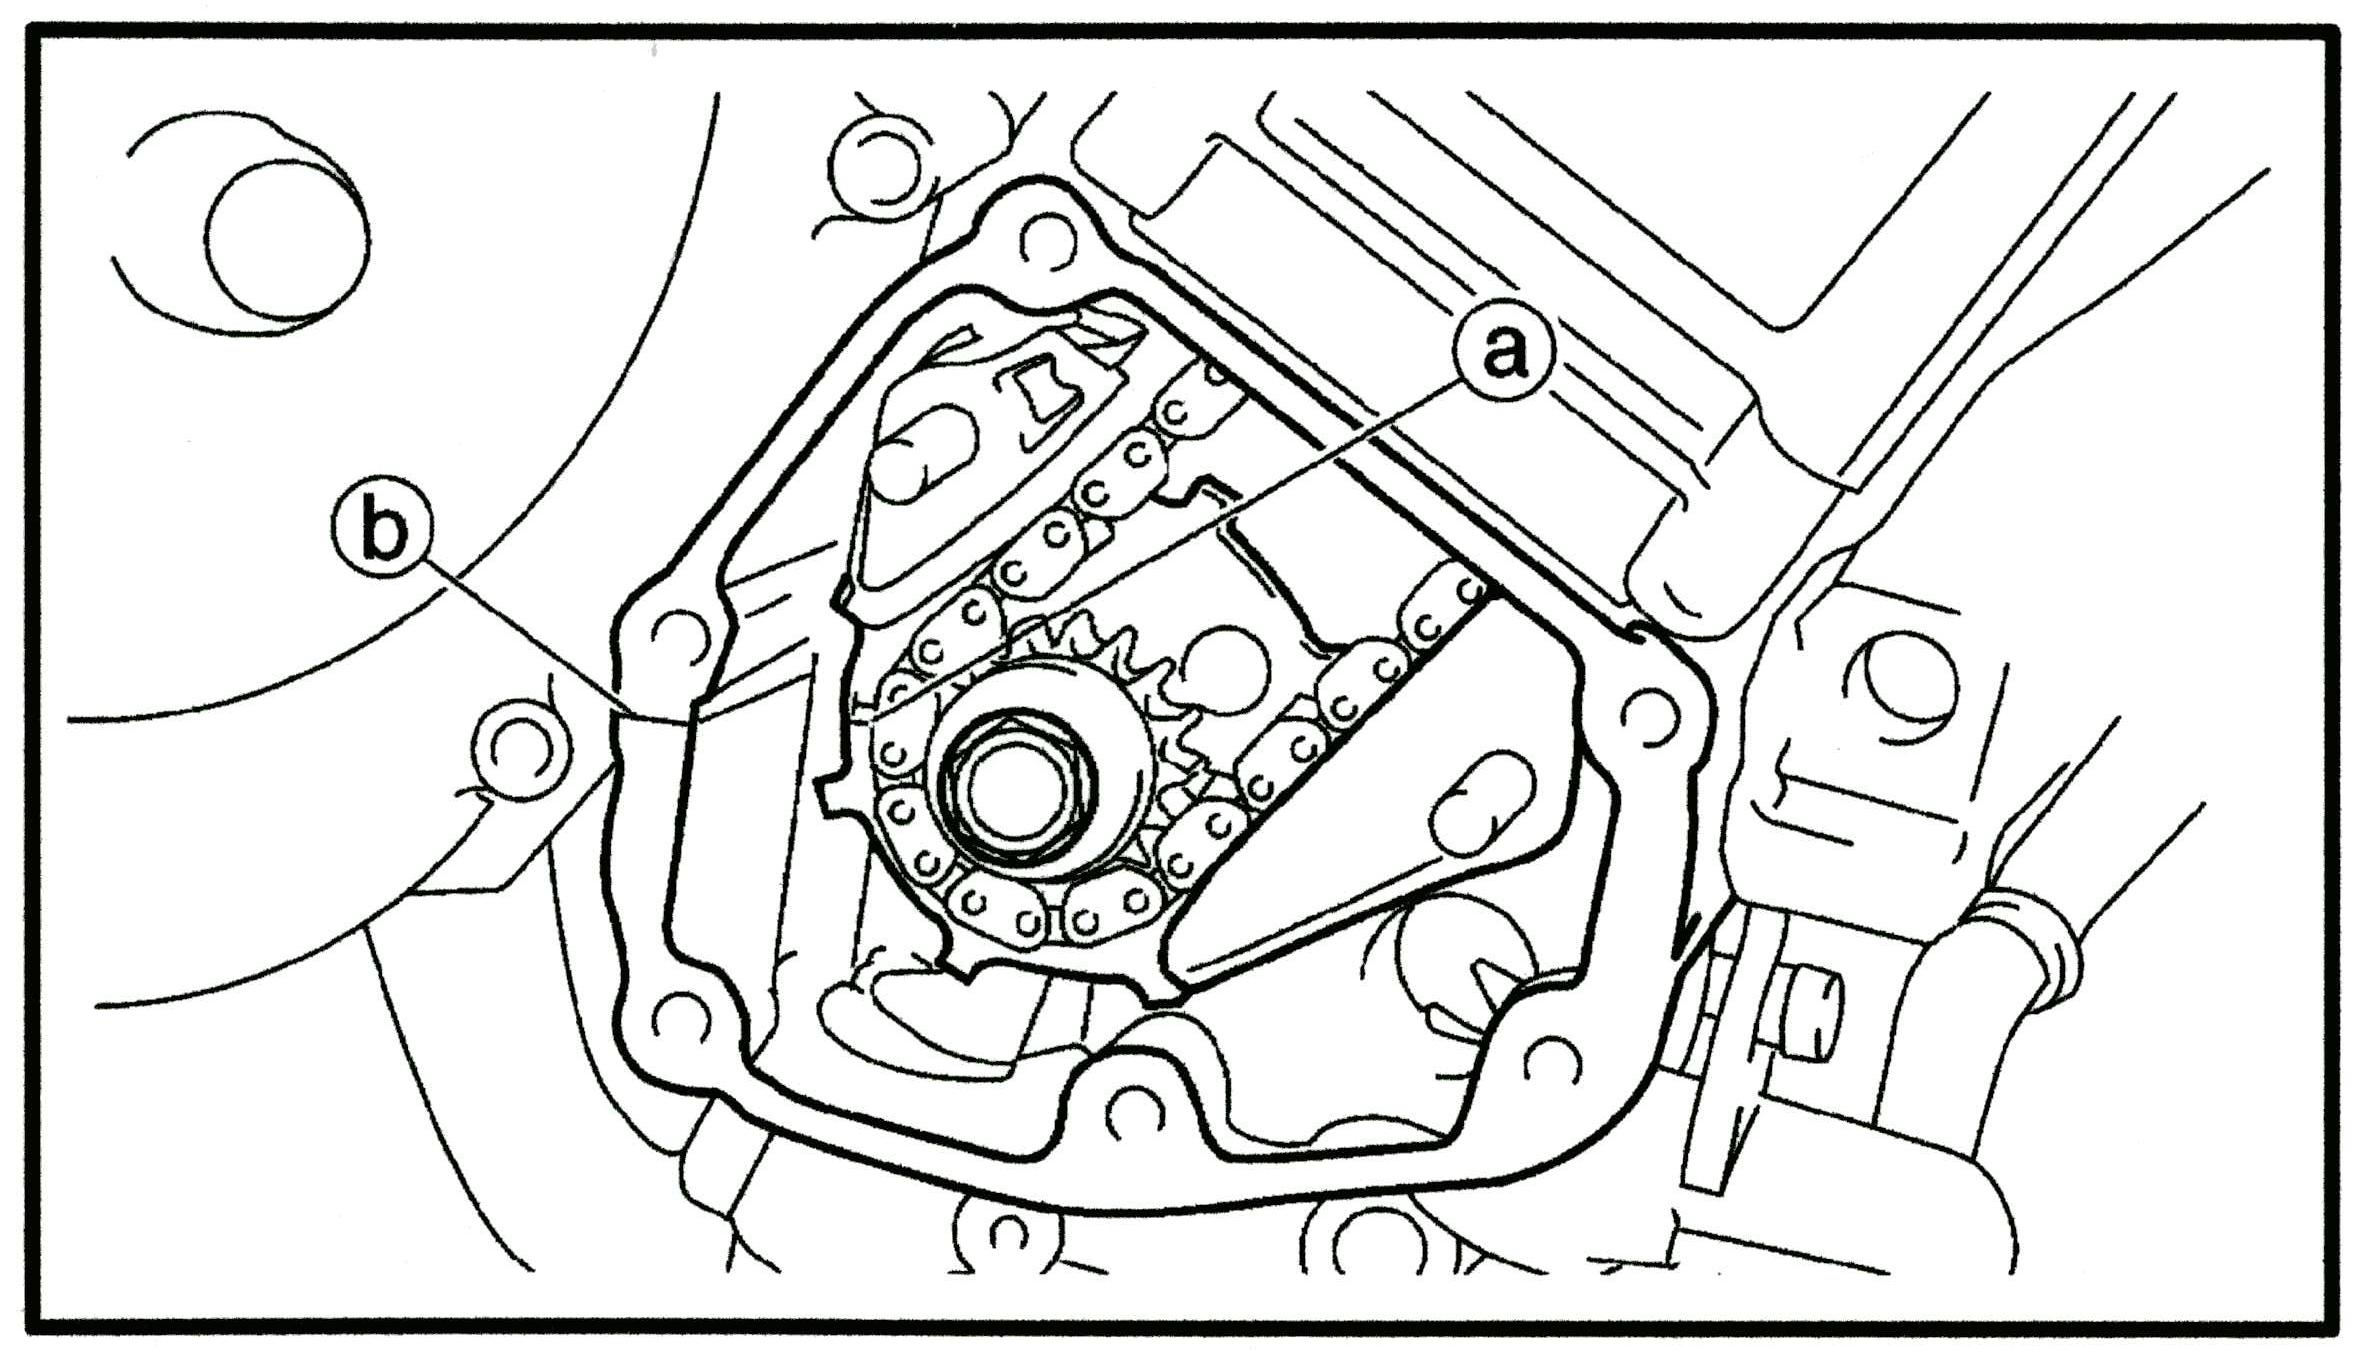 1994 Kawasaki 220 Wire Diagram Wiring Schematic Free Bayou Parts Klf 400 Cdi 33 Swisher T1360 Atv